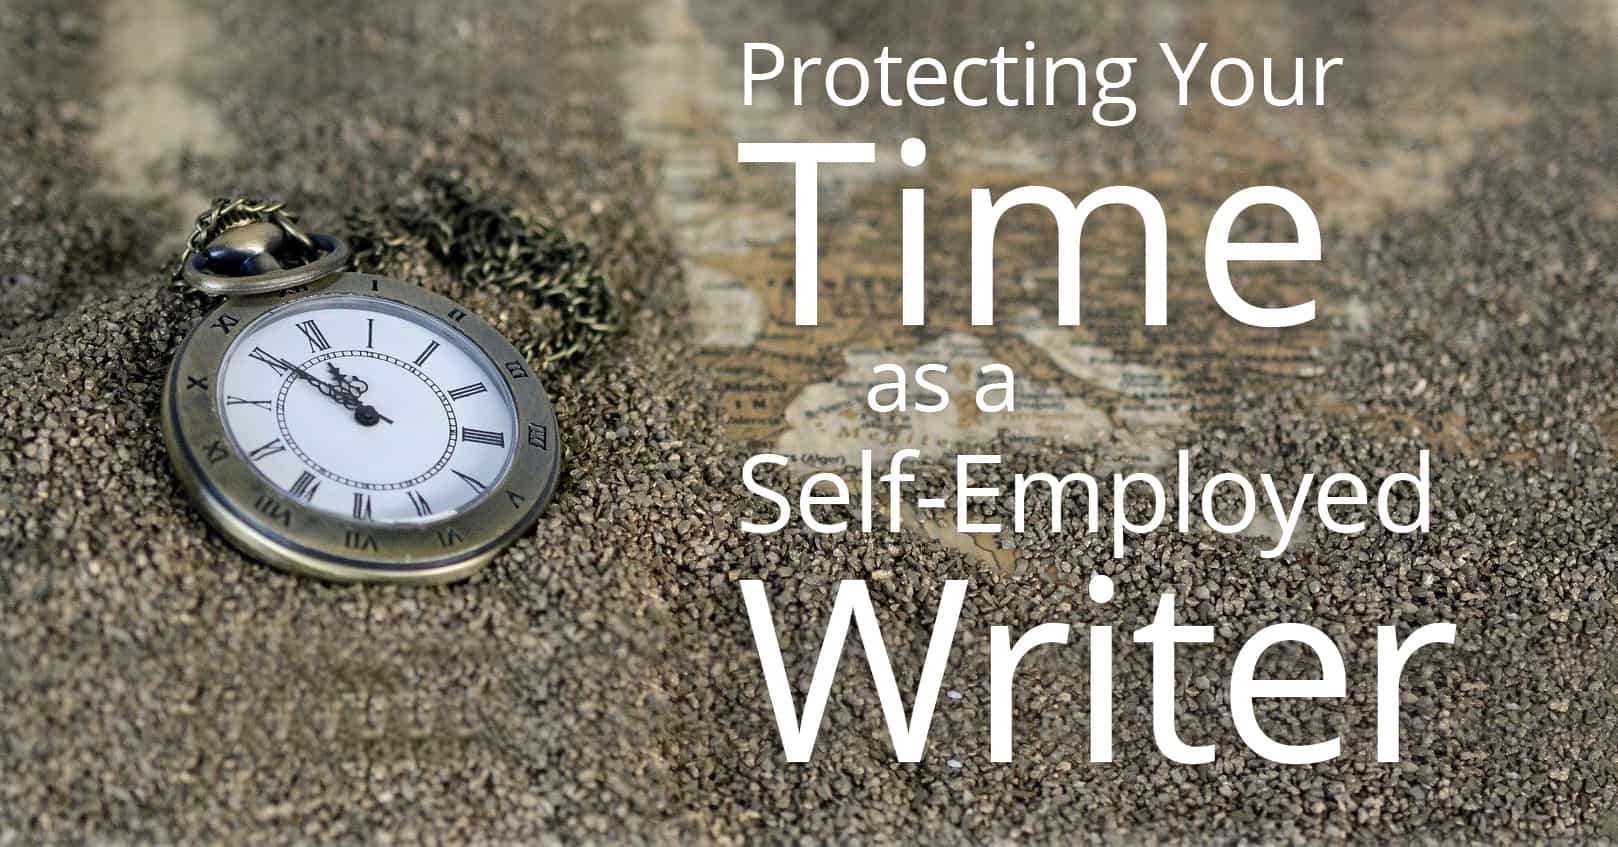 protecting your time as a self-employed writer